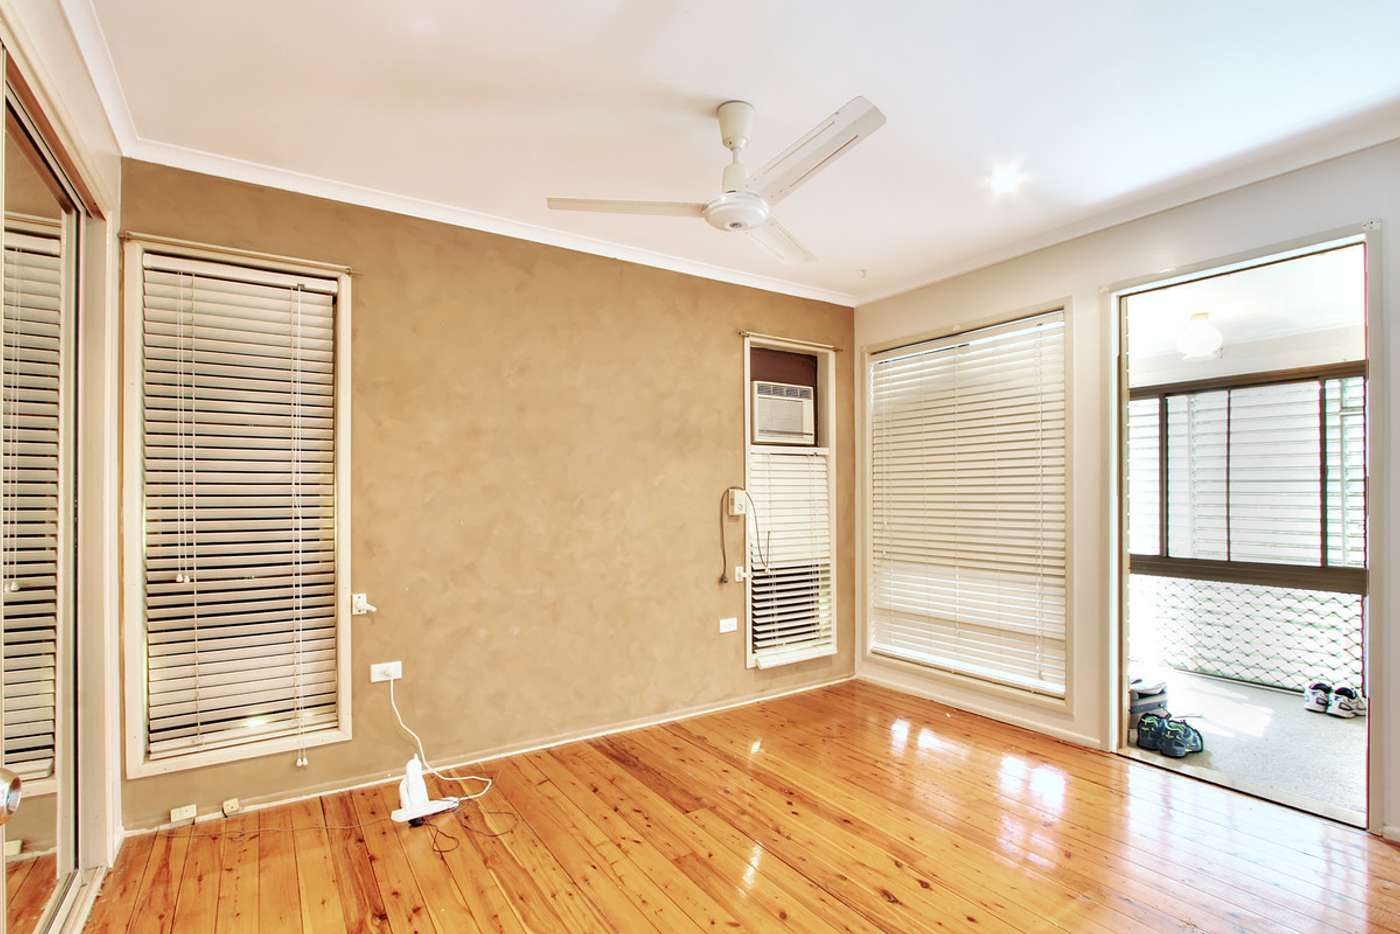 Seventh view of Homely house listing, 10 Lorimer Street, Springwood QLD 4127